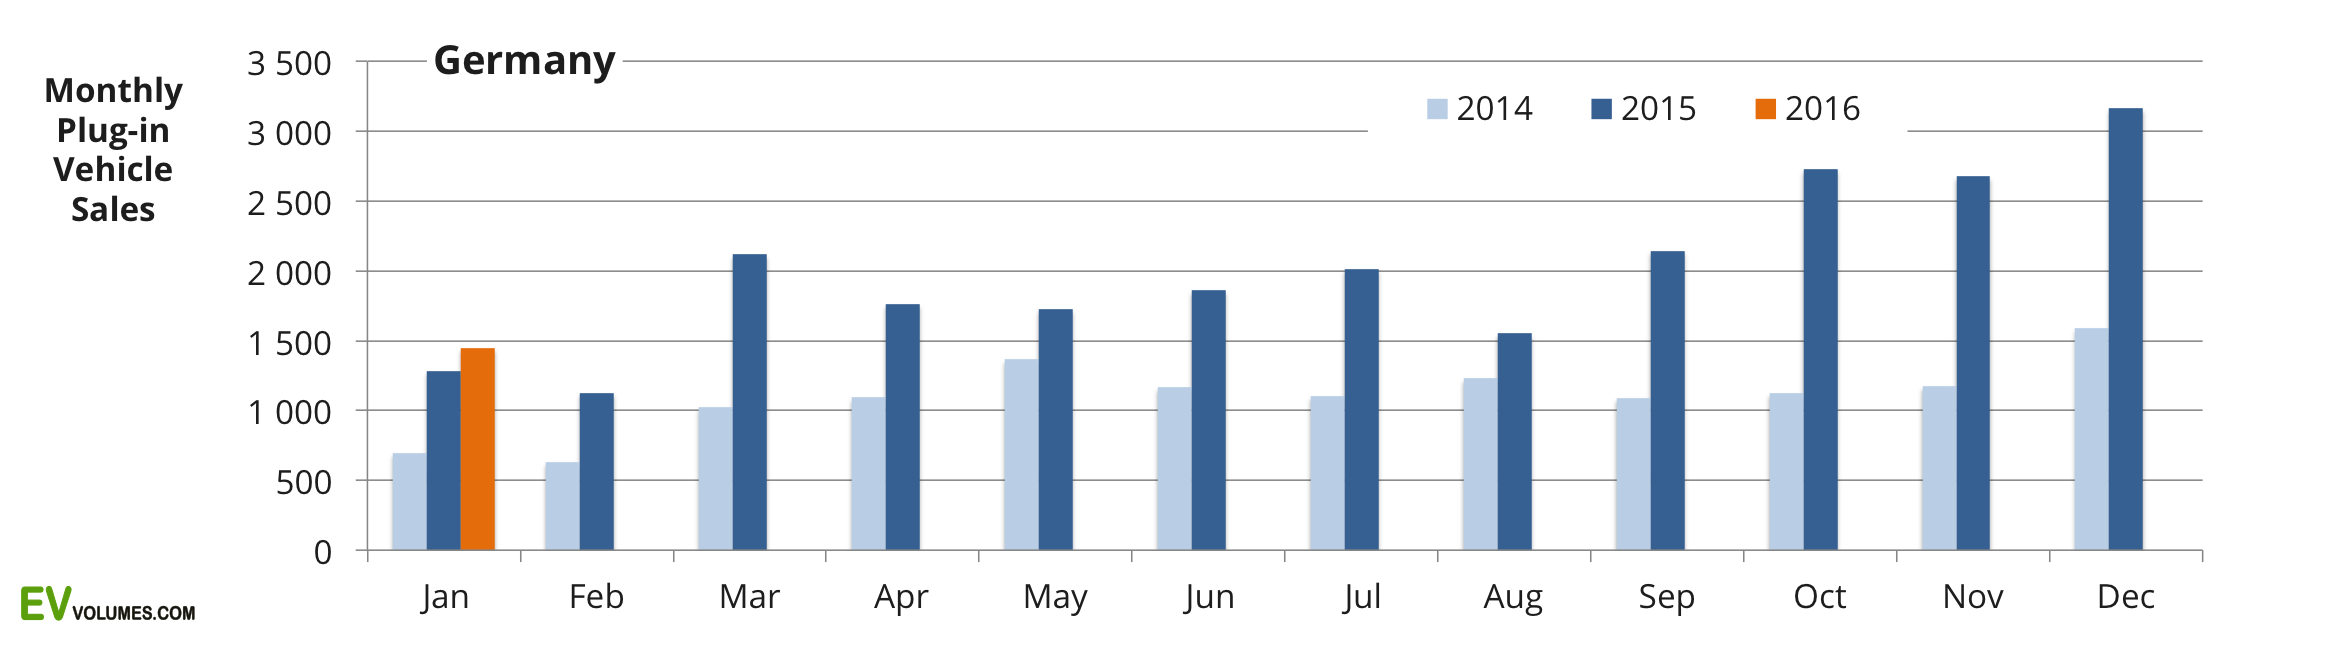 first Germany 2015 and January 2016 plug-in vehicle sales image